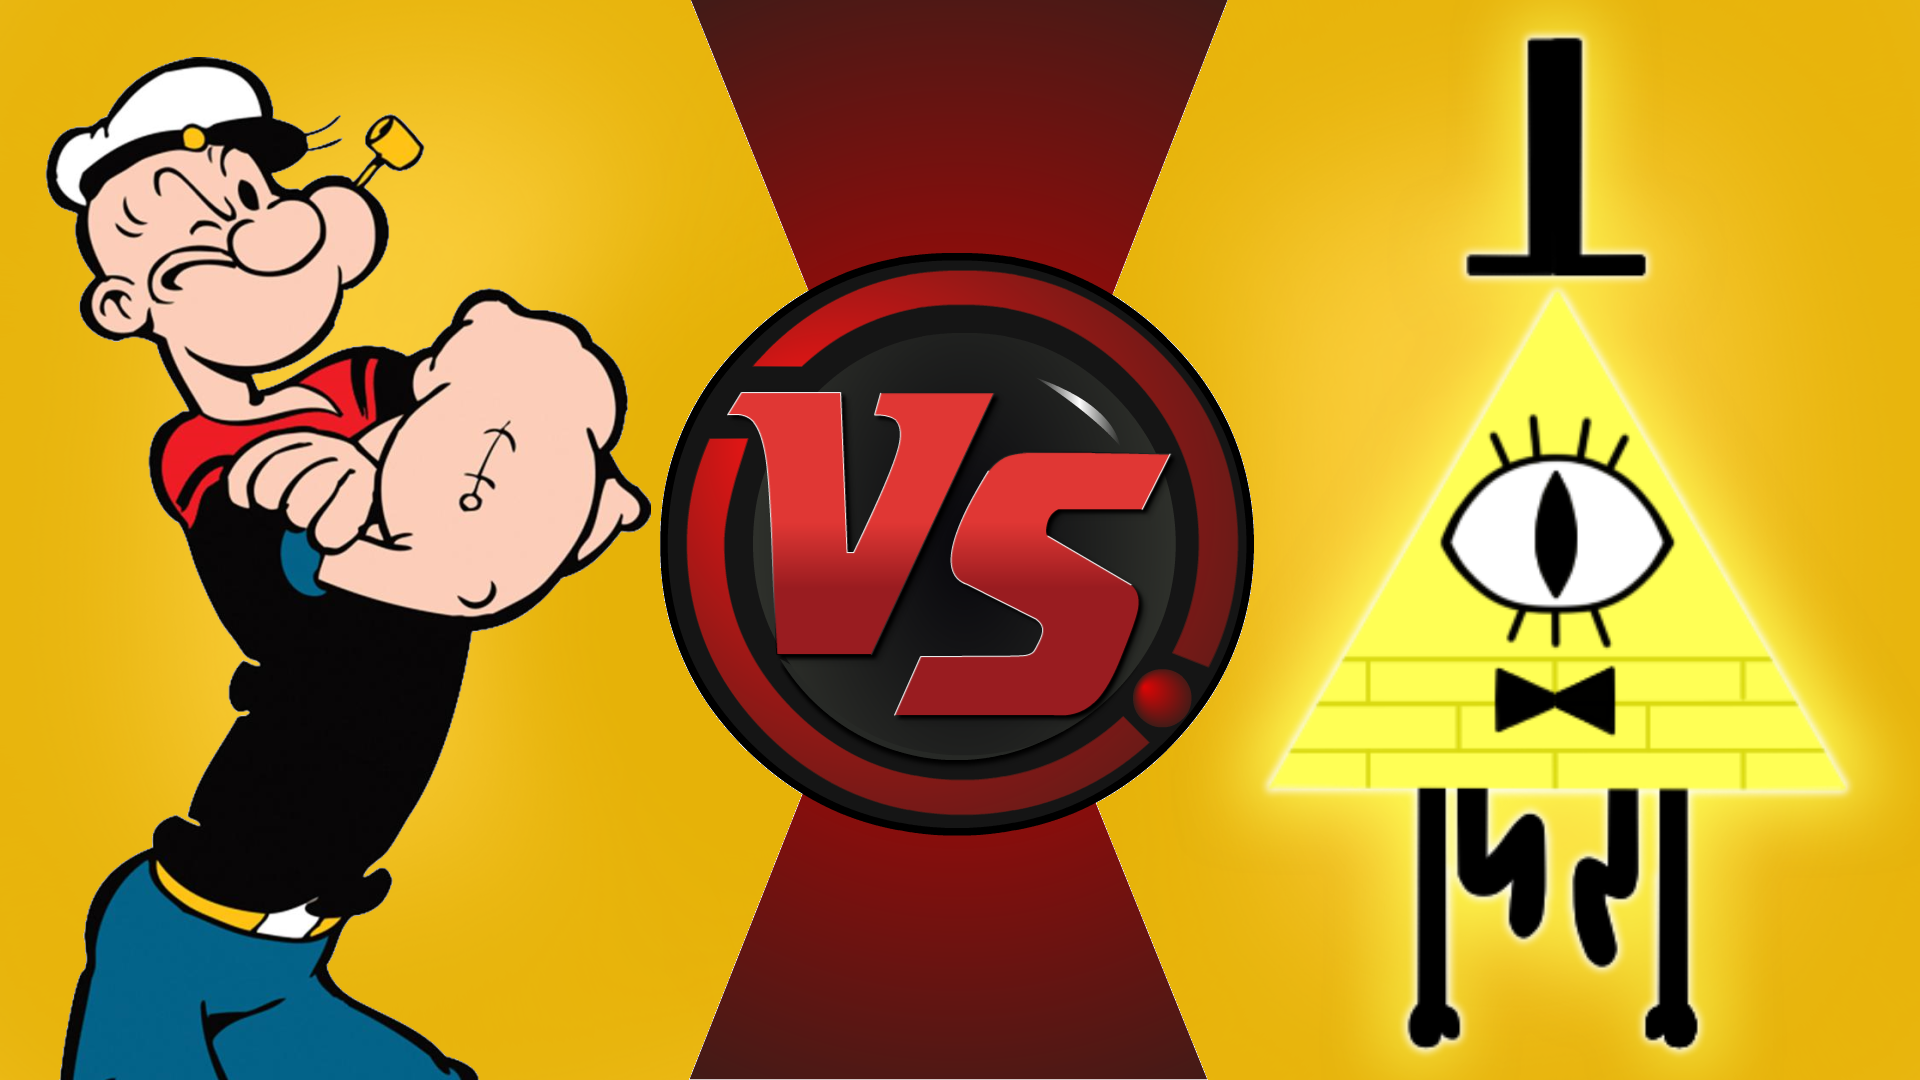 CFC|Popeye vs. Bill Cipher by Vex2001